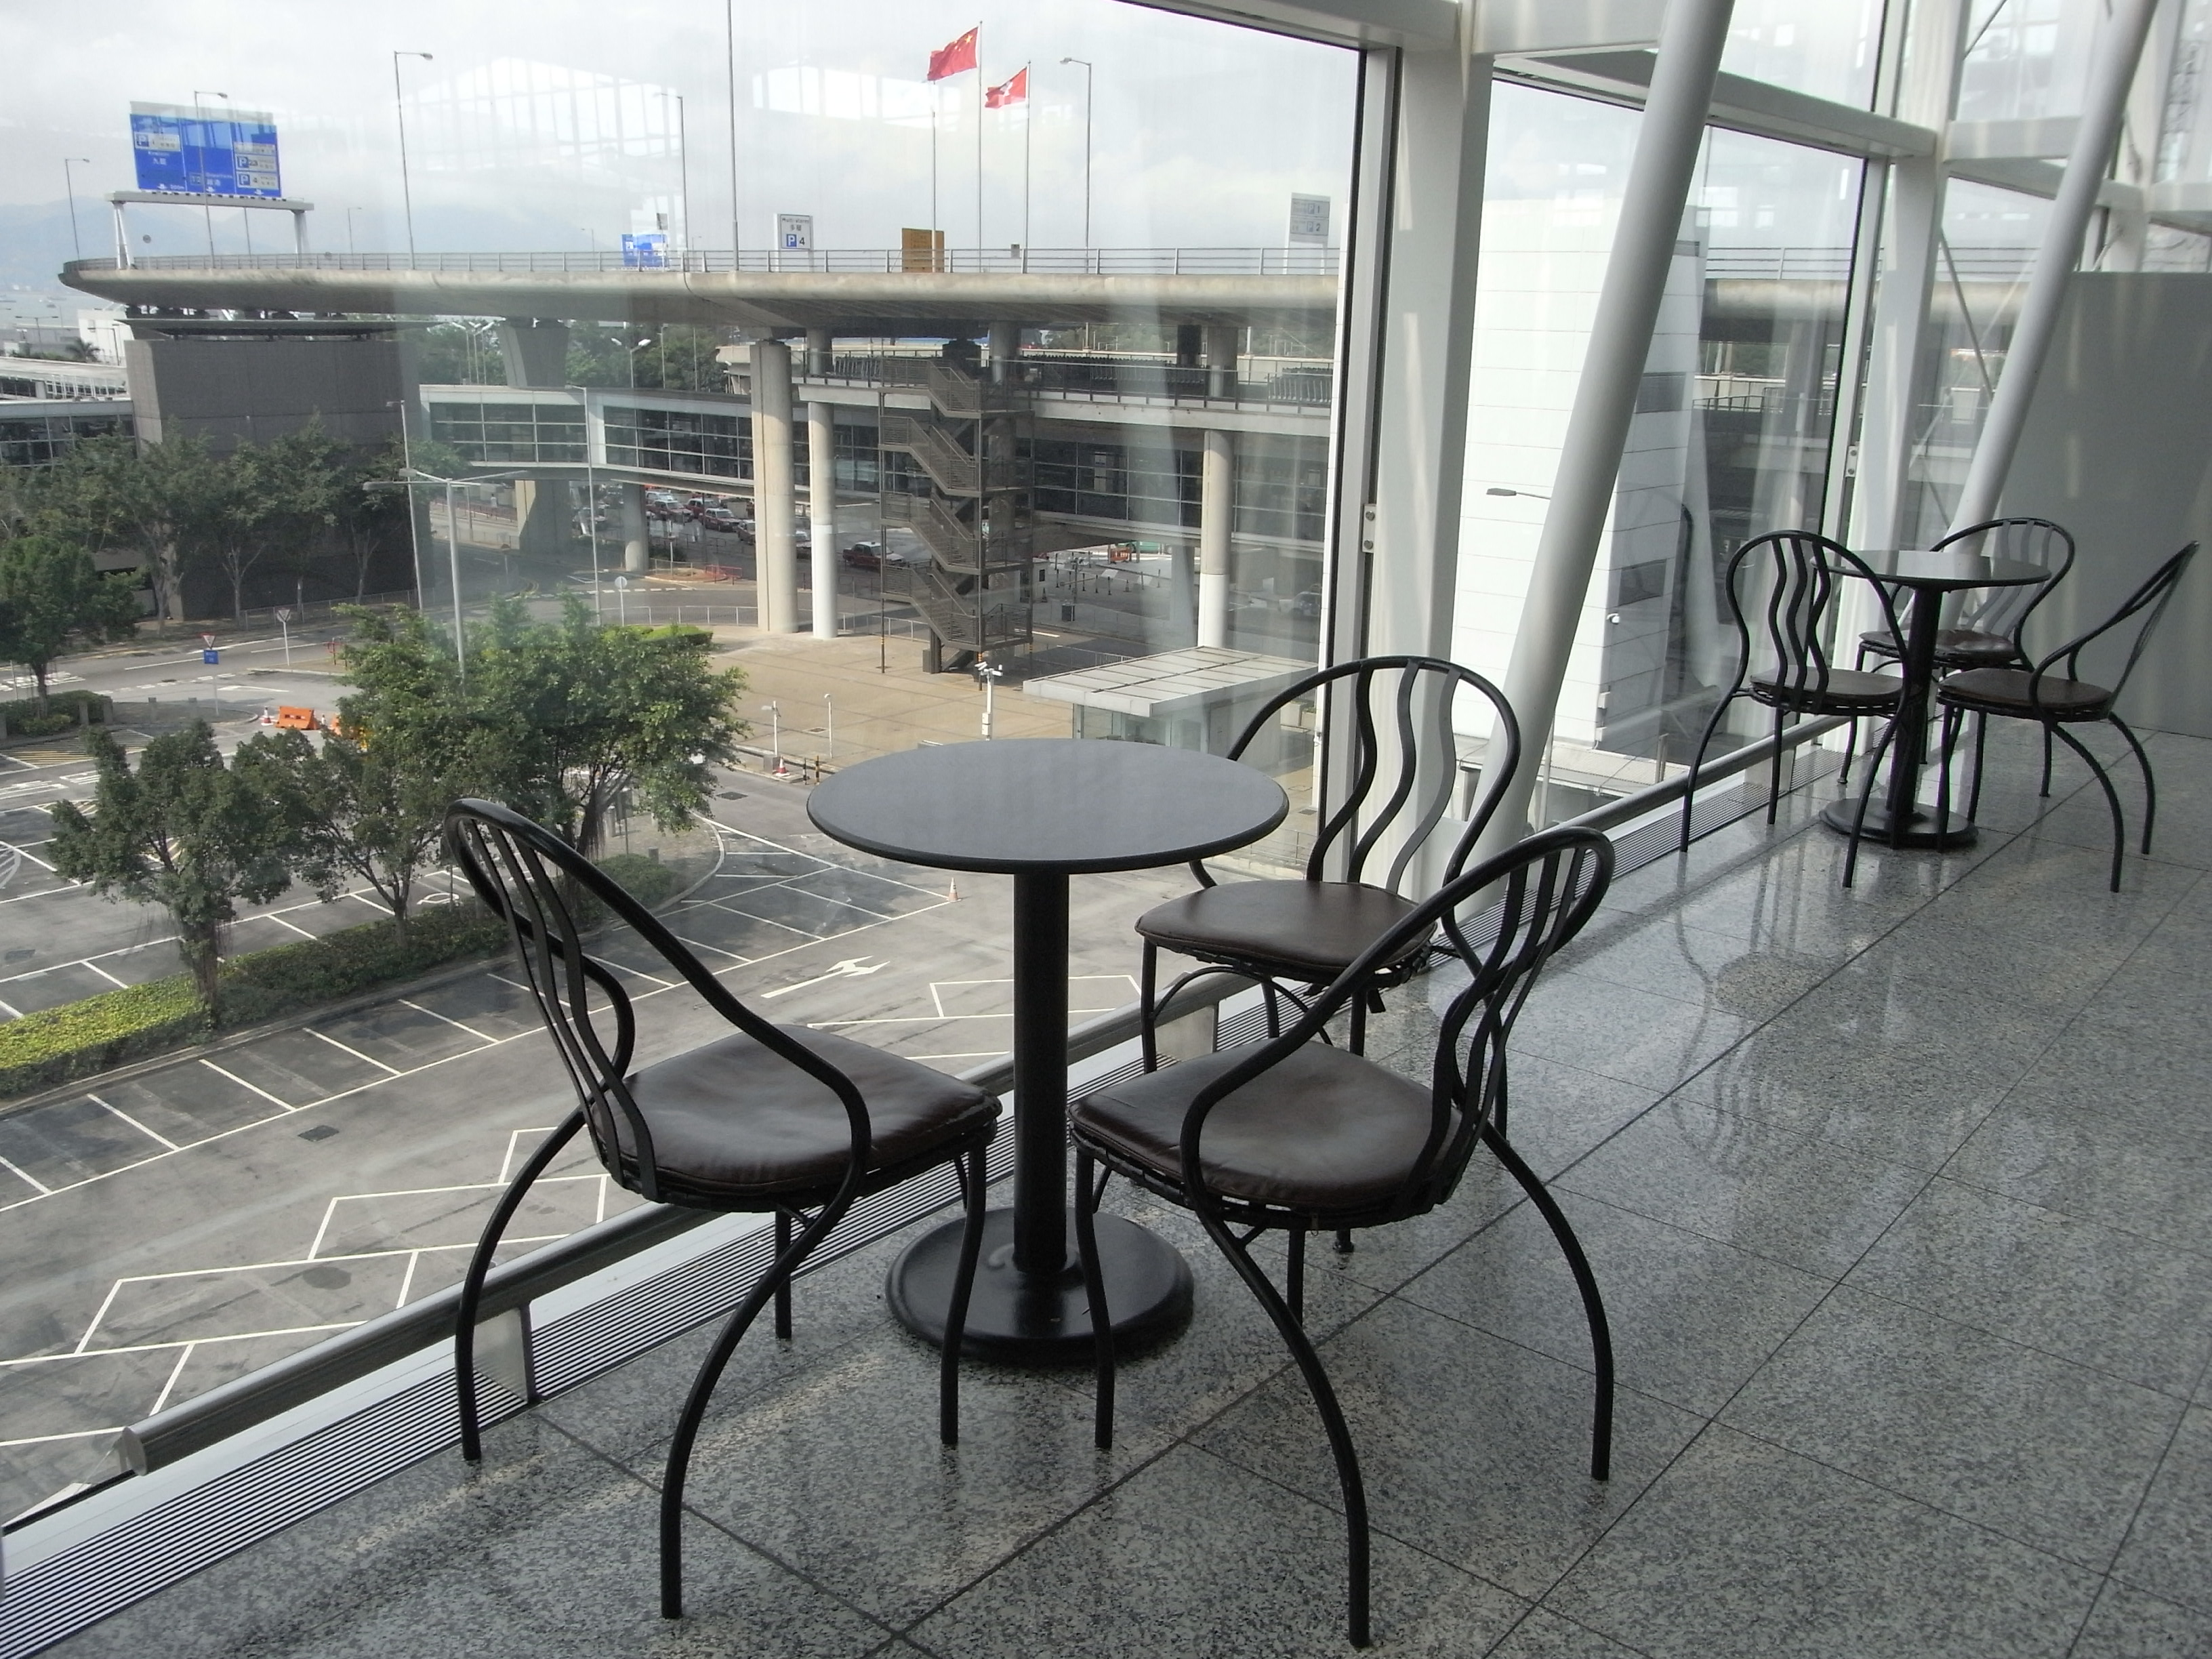 FileHK Airport Terminal 1 Pacific Coffee restaurant table chairs